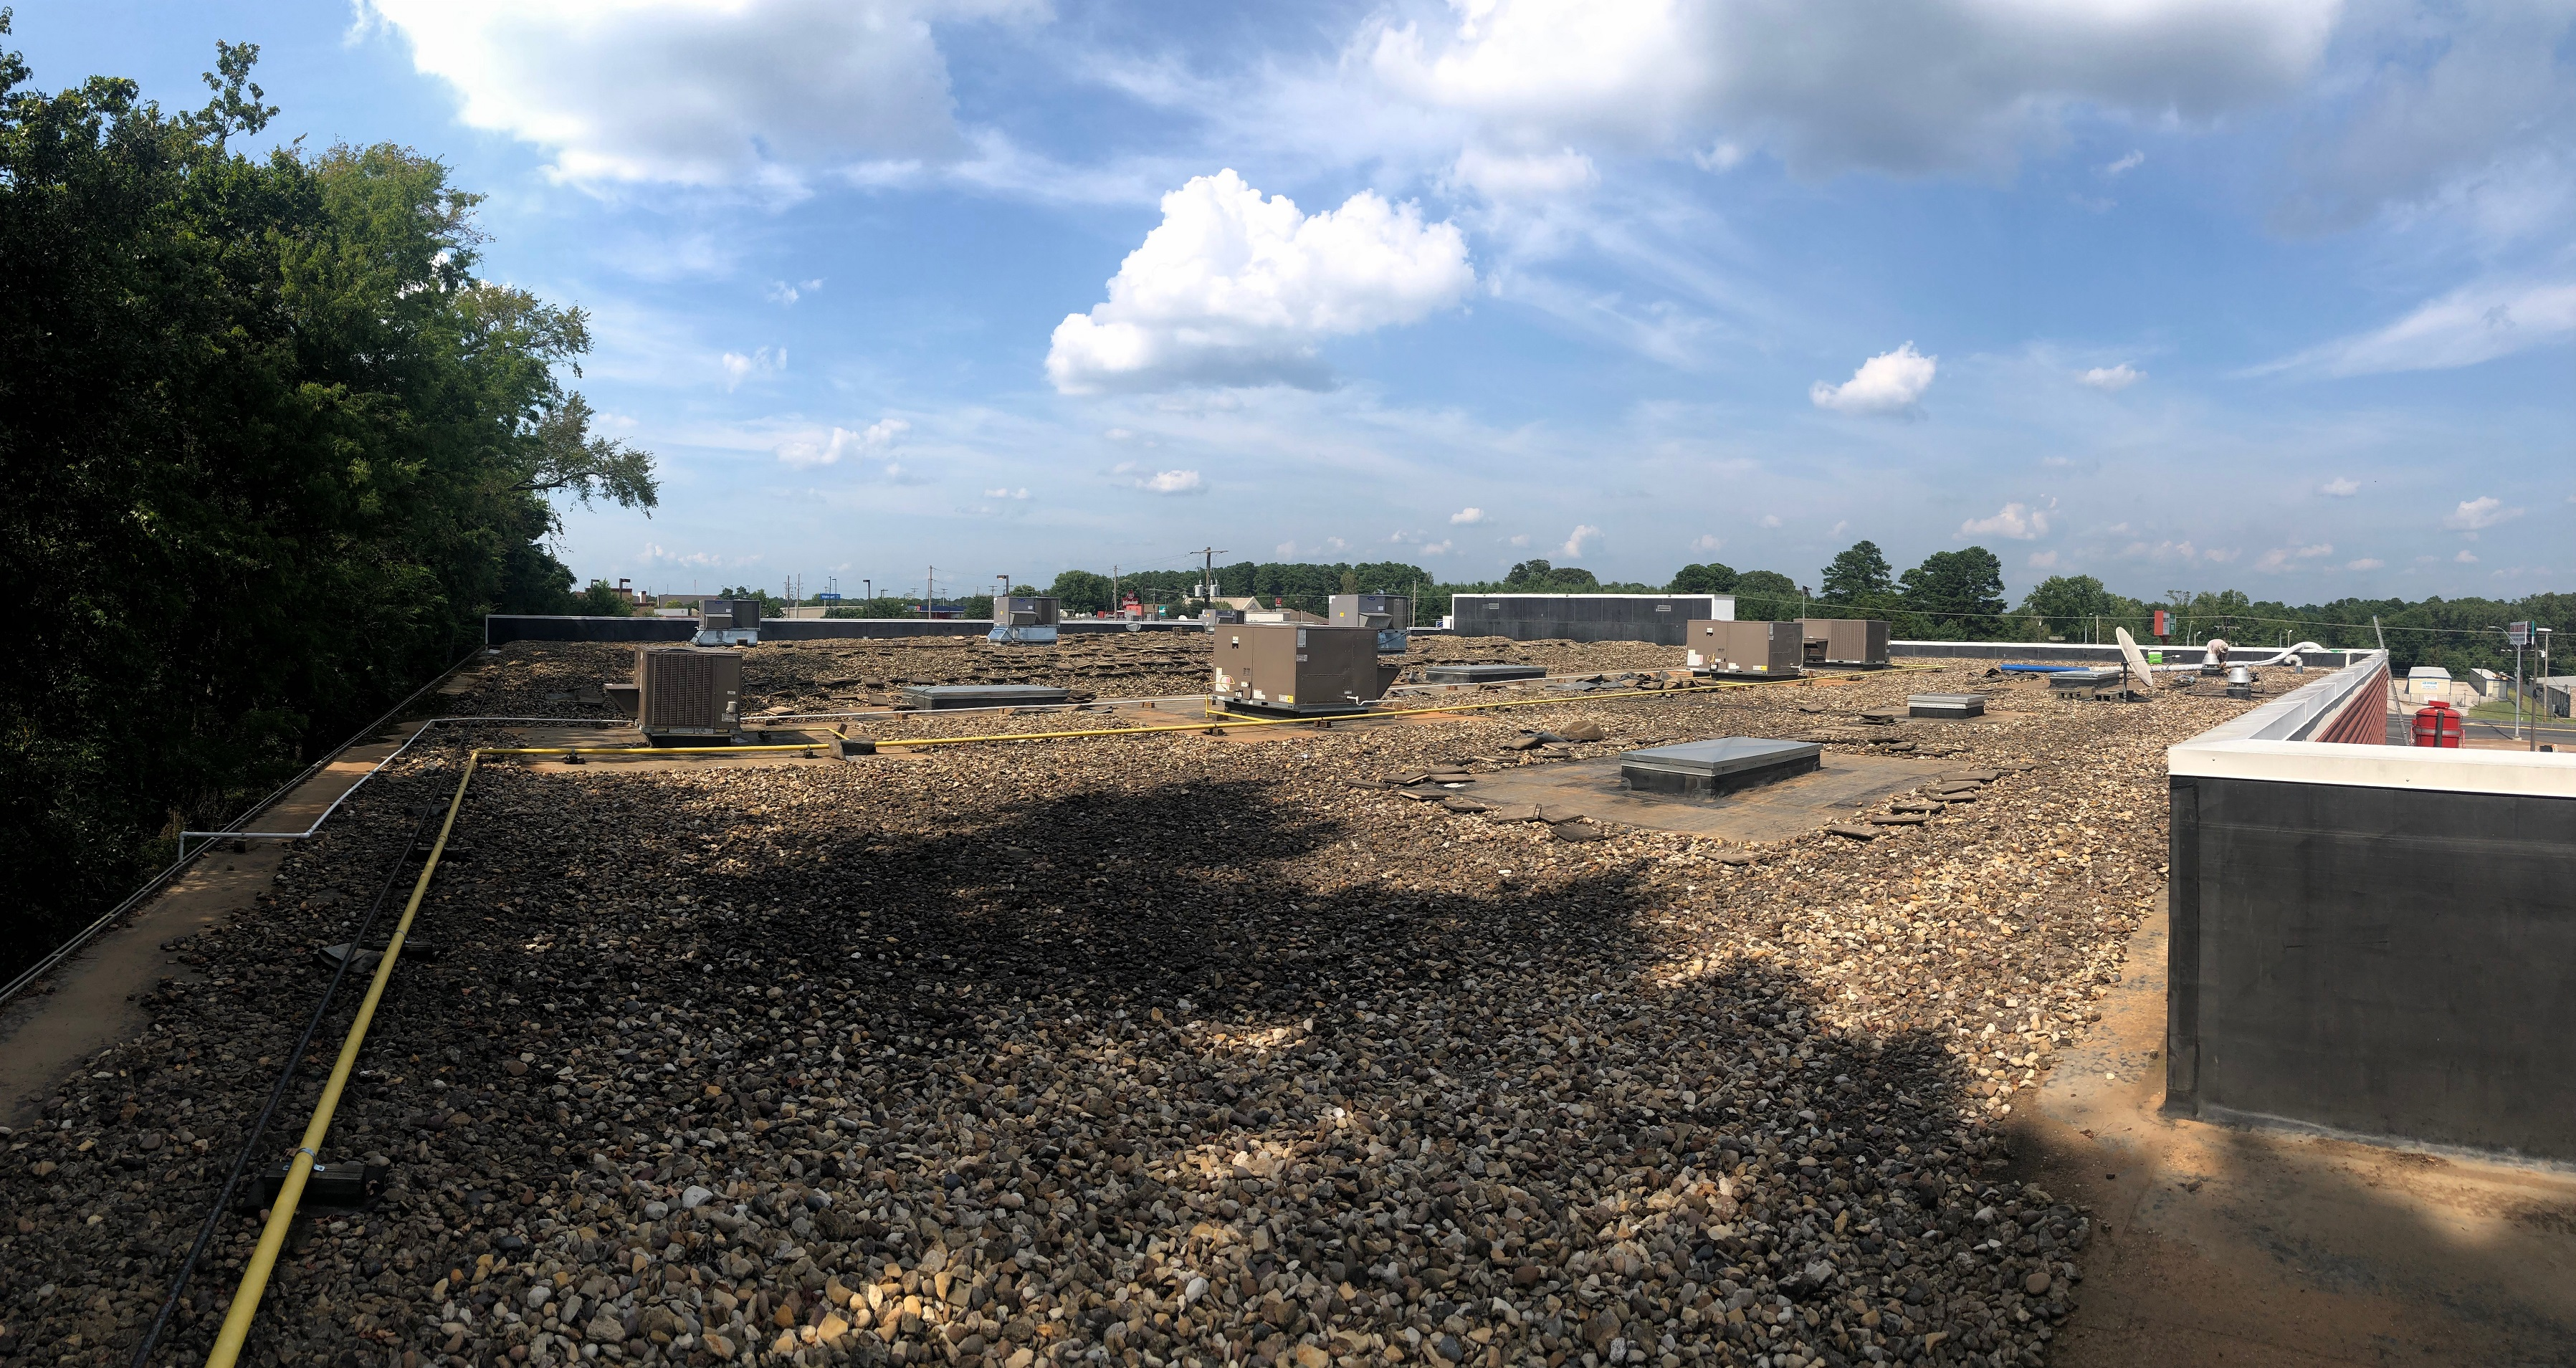 East Texas Roof Coating on Ballasted EPDM - Roofers ...